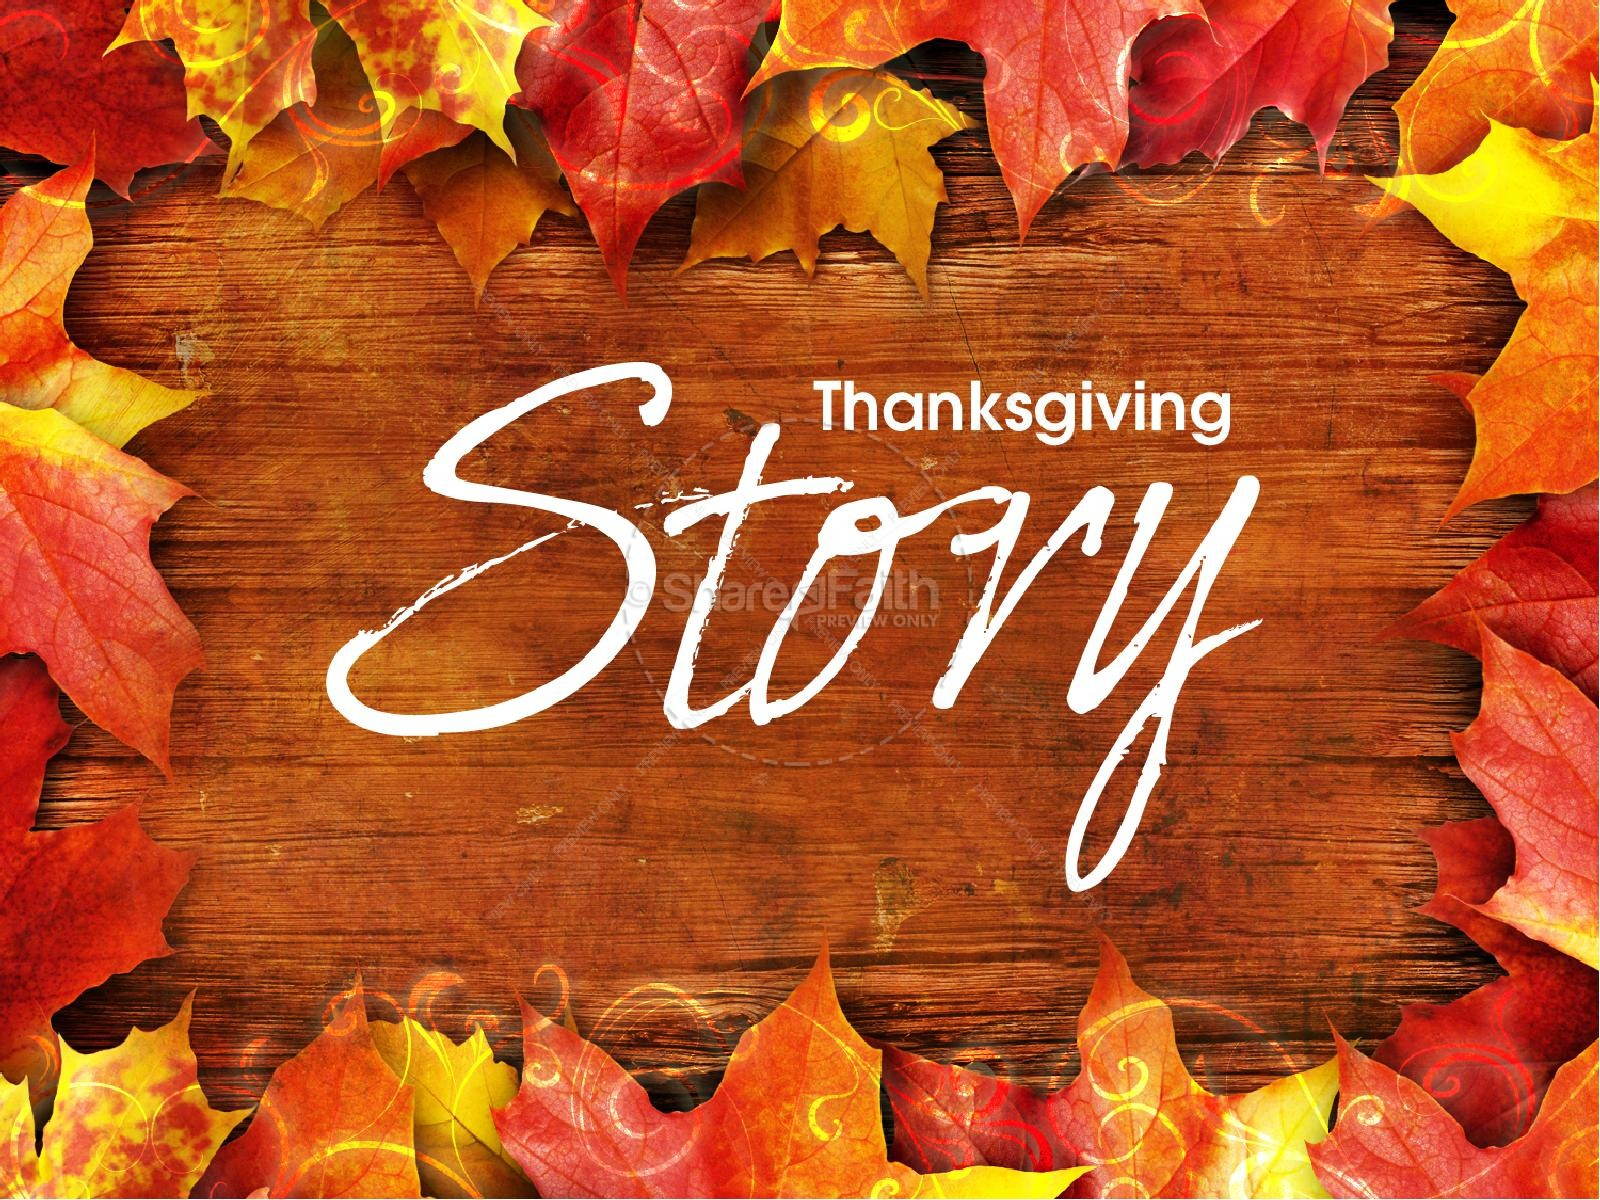 Thanksgiving Story Sermon Presentation | slide 2